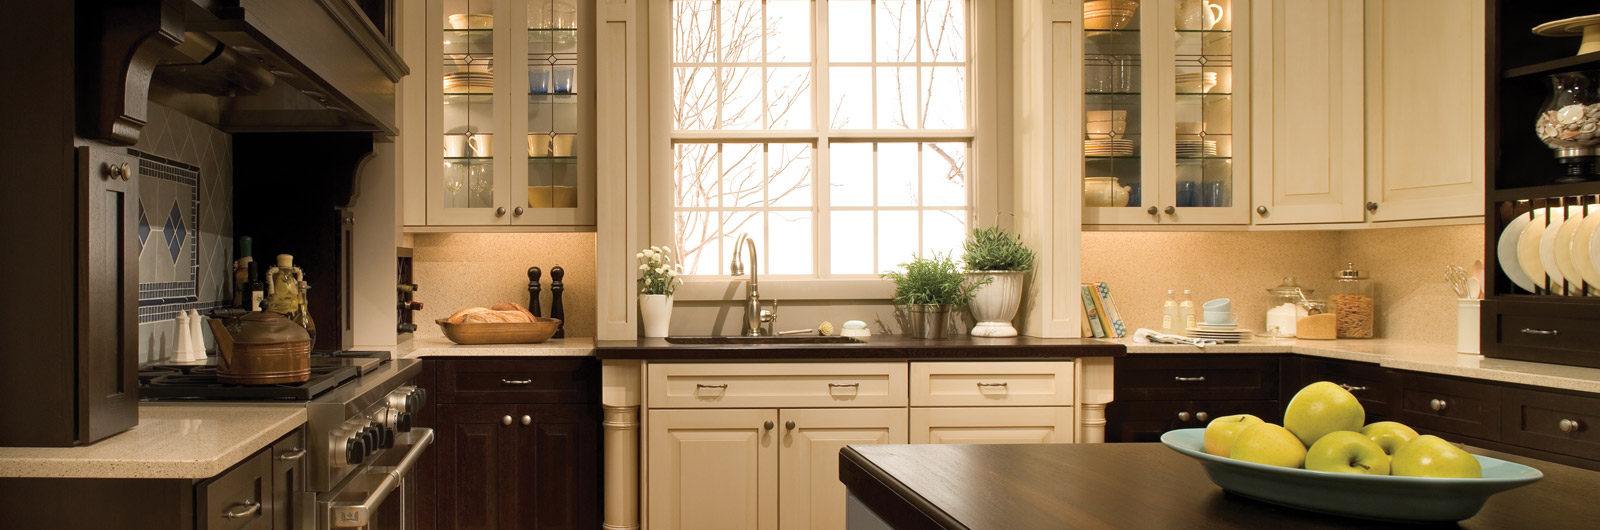 Marchand Creative Kitchens Specializes in designing New Orleans custom kitchens